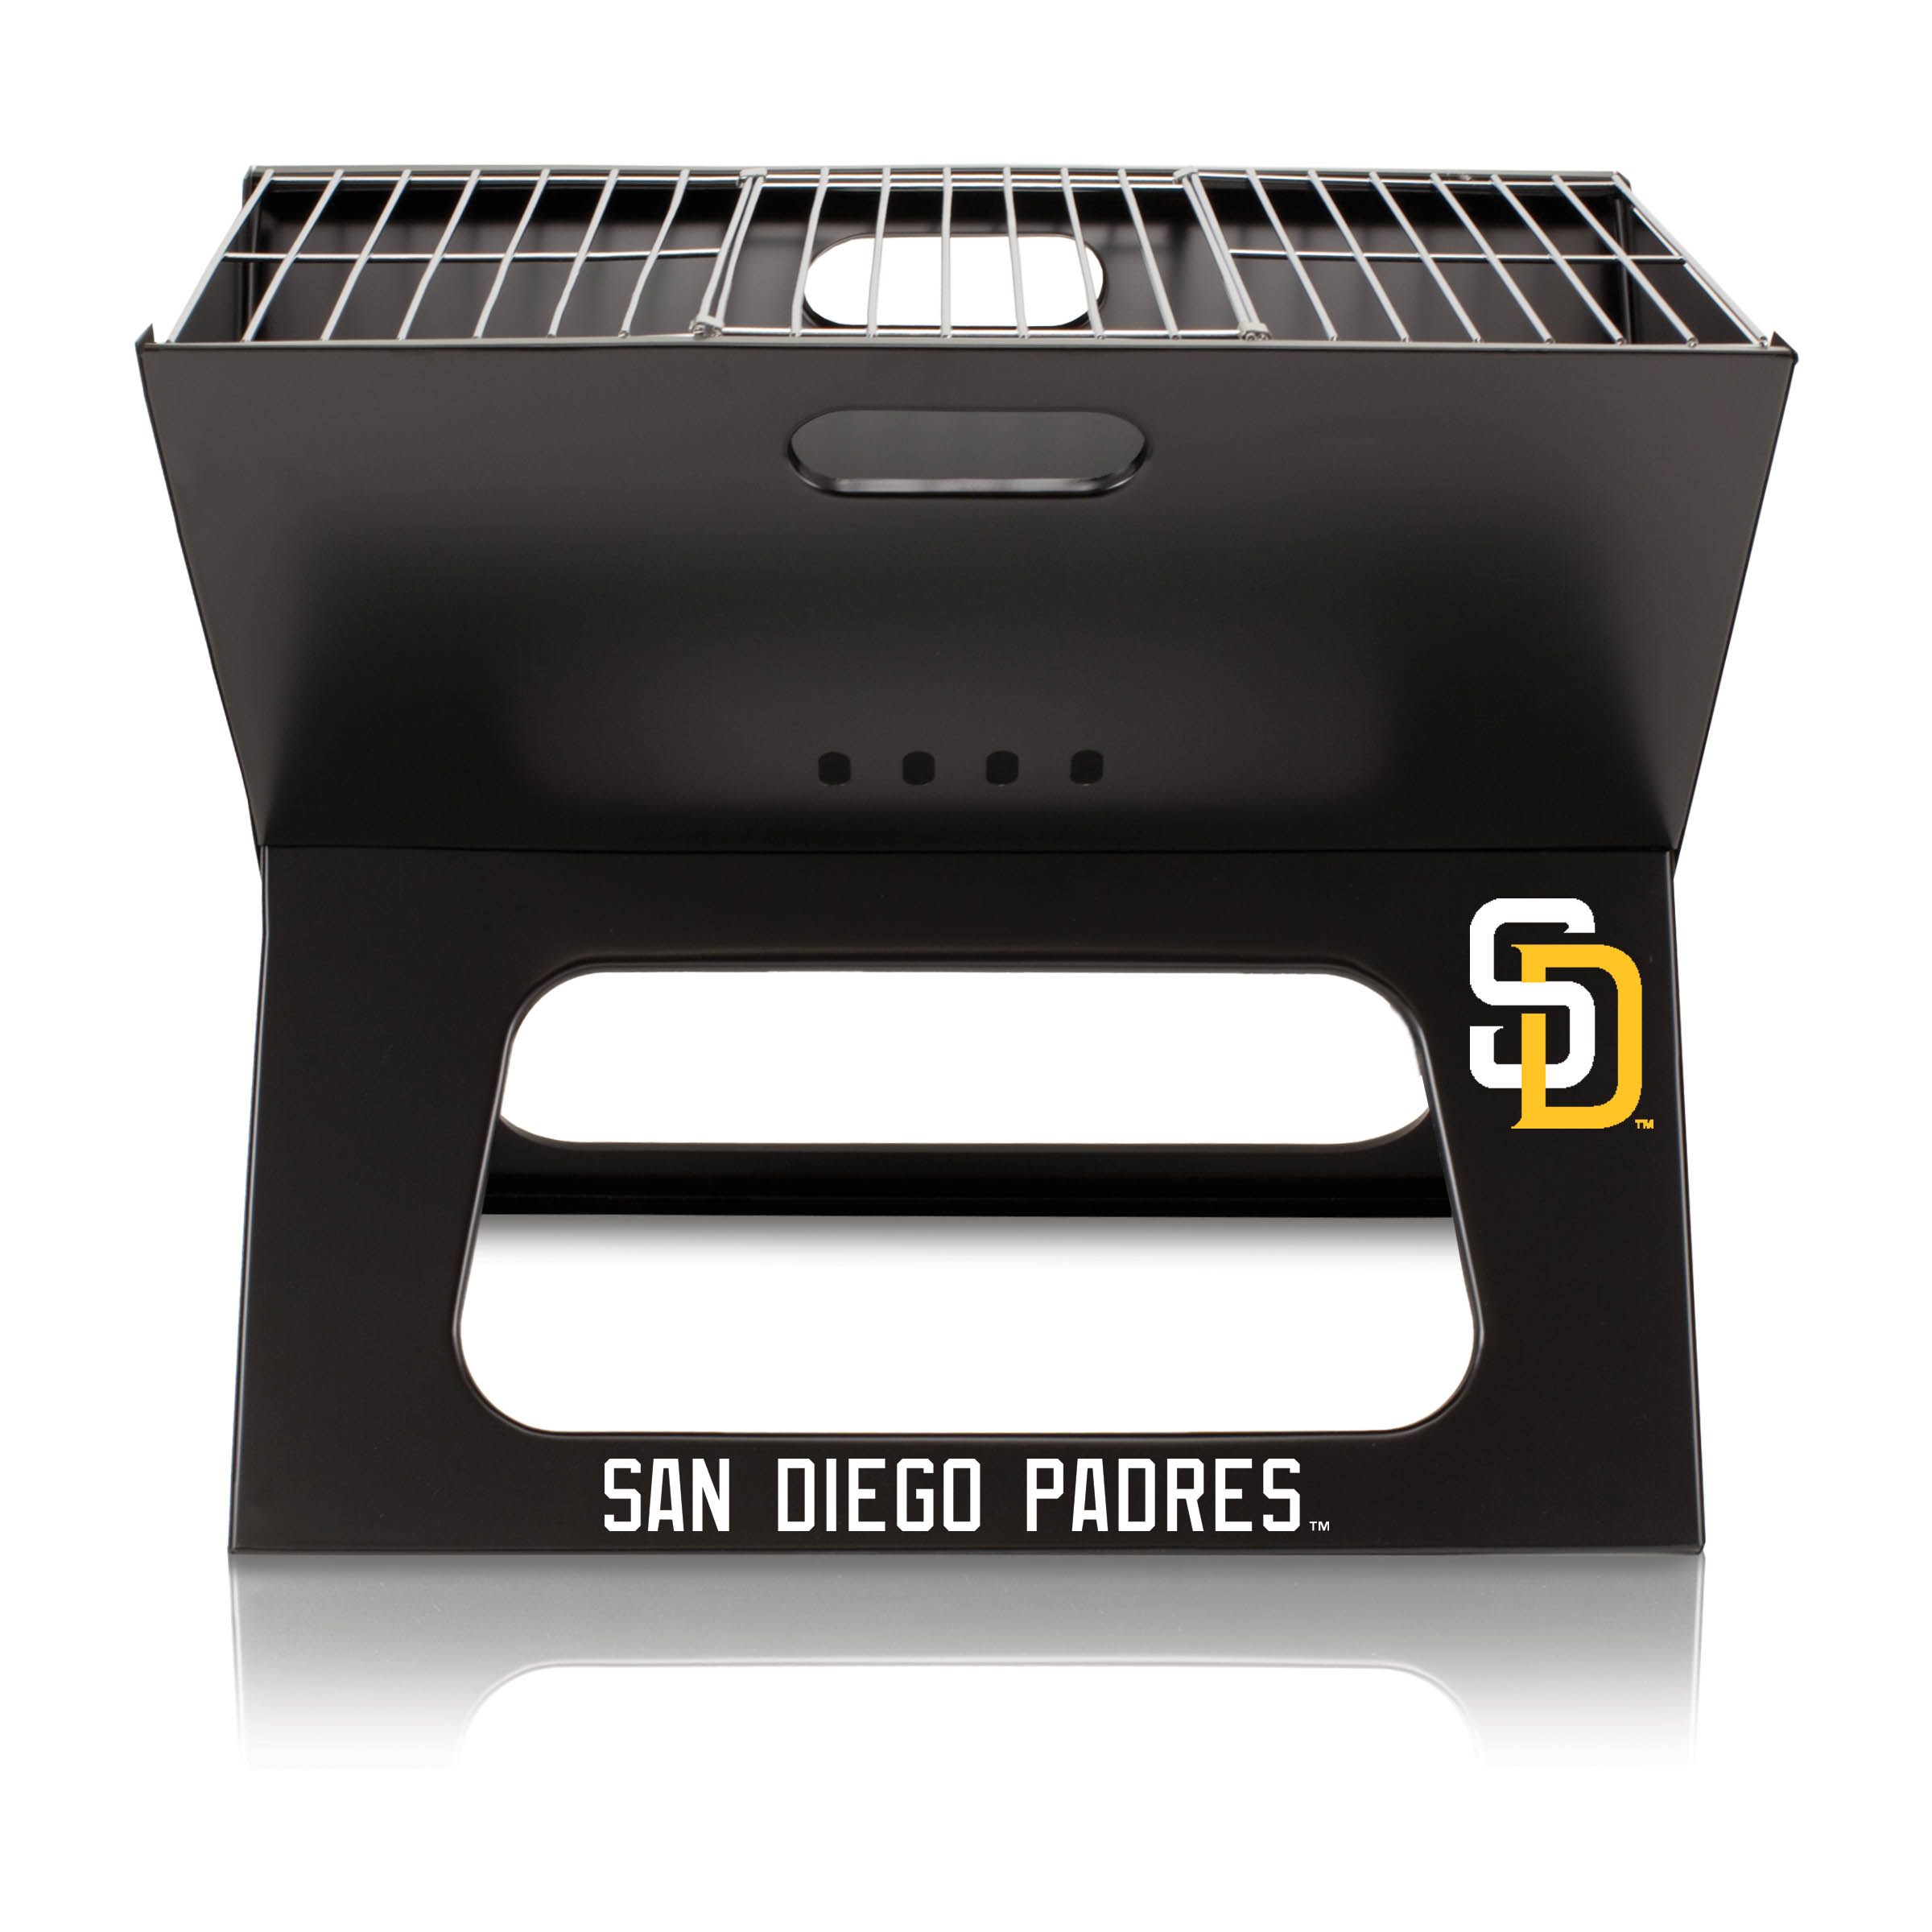 San Diego Padres X-Grill Portable BBQ - No Size